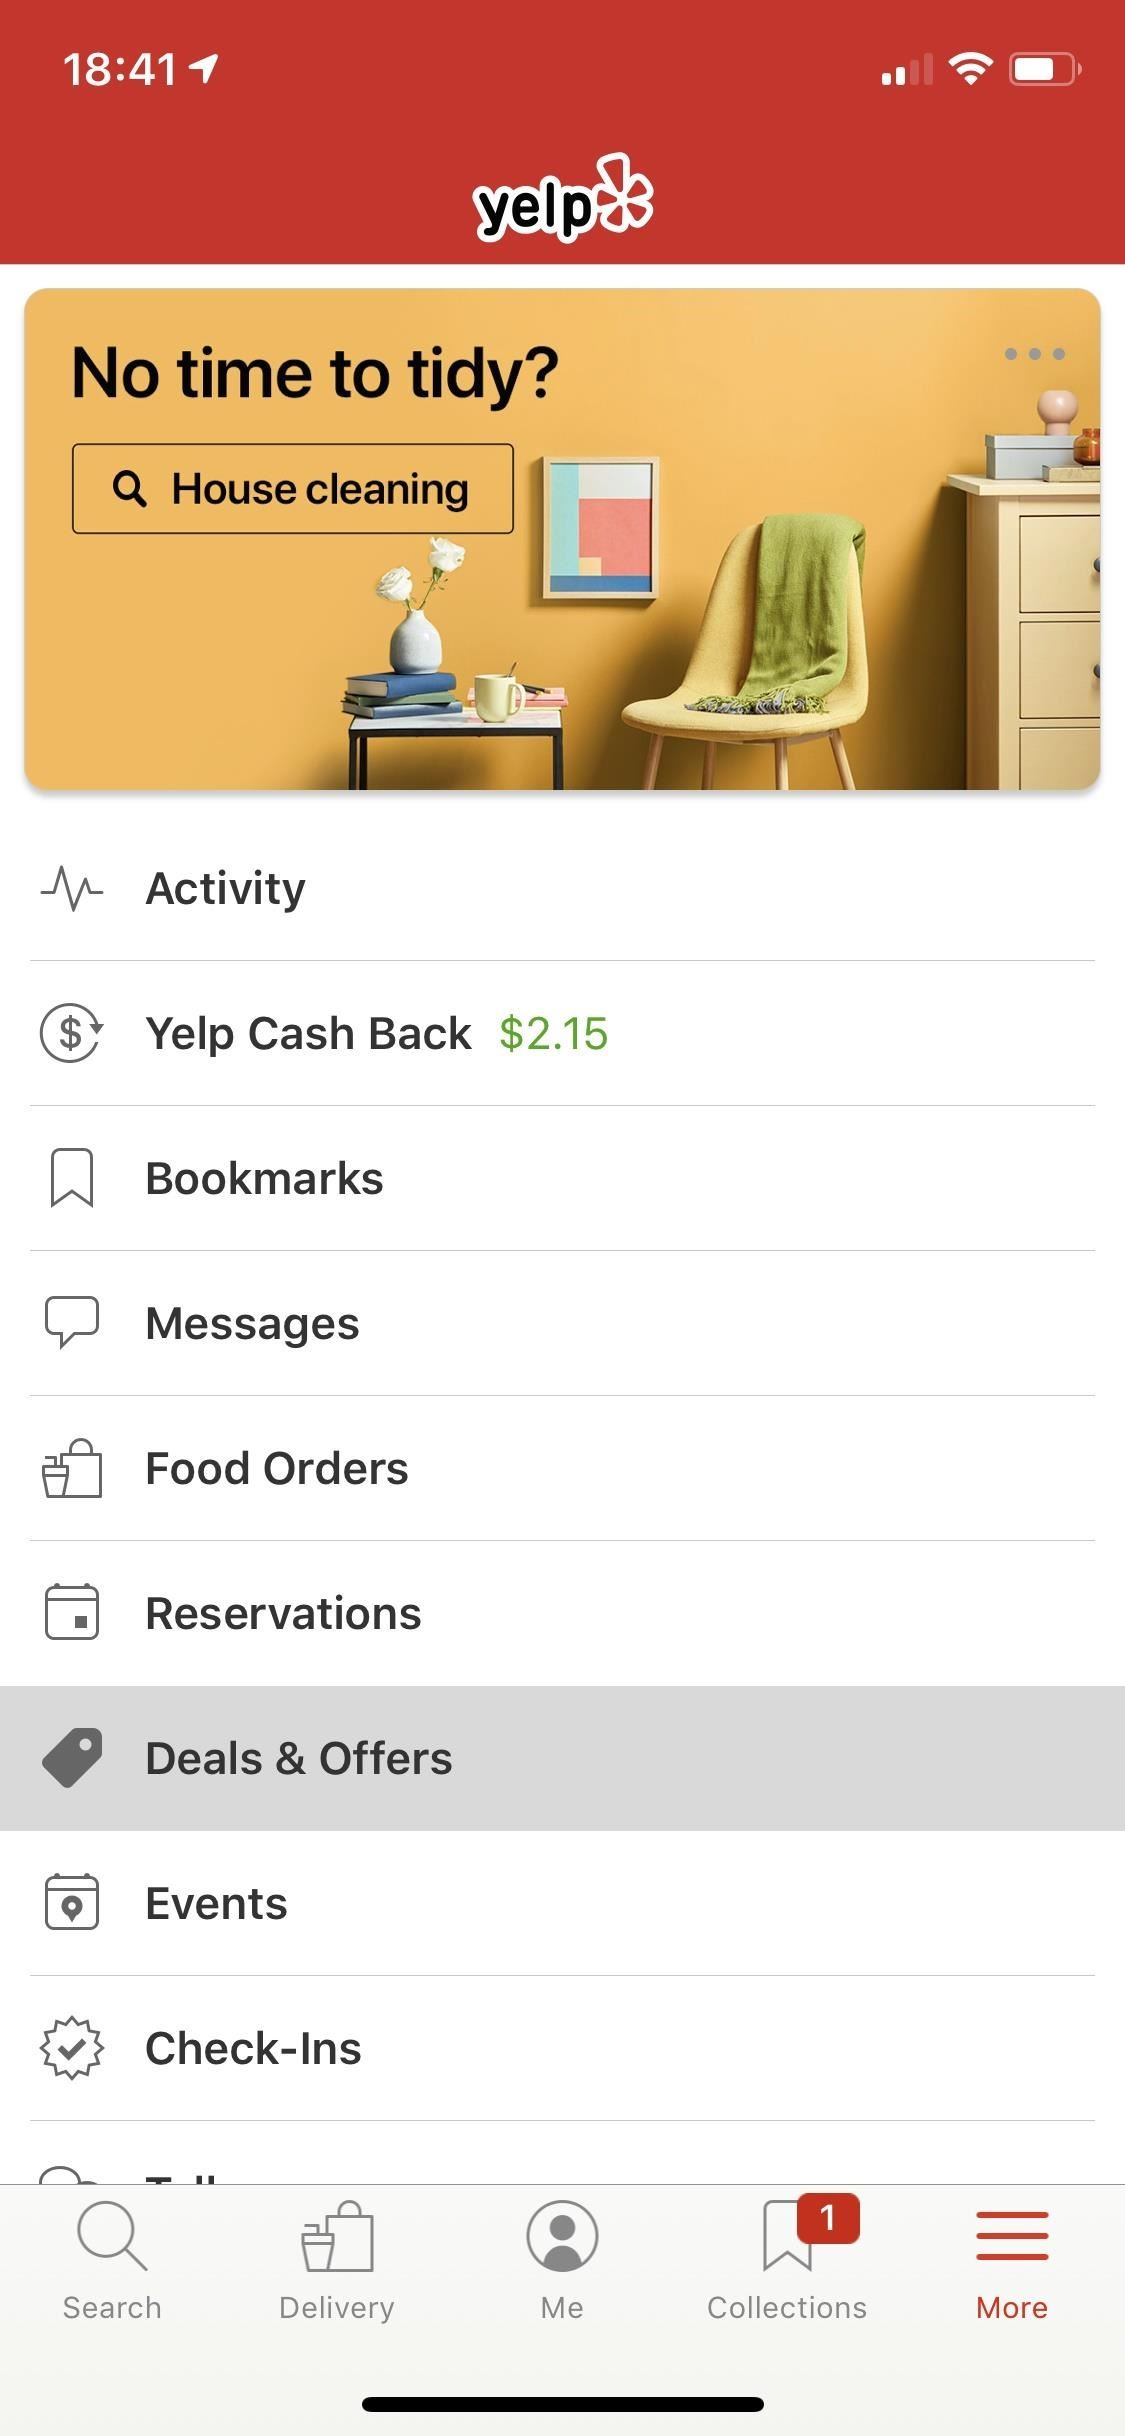 How to Find & Use Yelp Deals on Your Phone to Save Money When Dining Out, Shopping & More